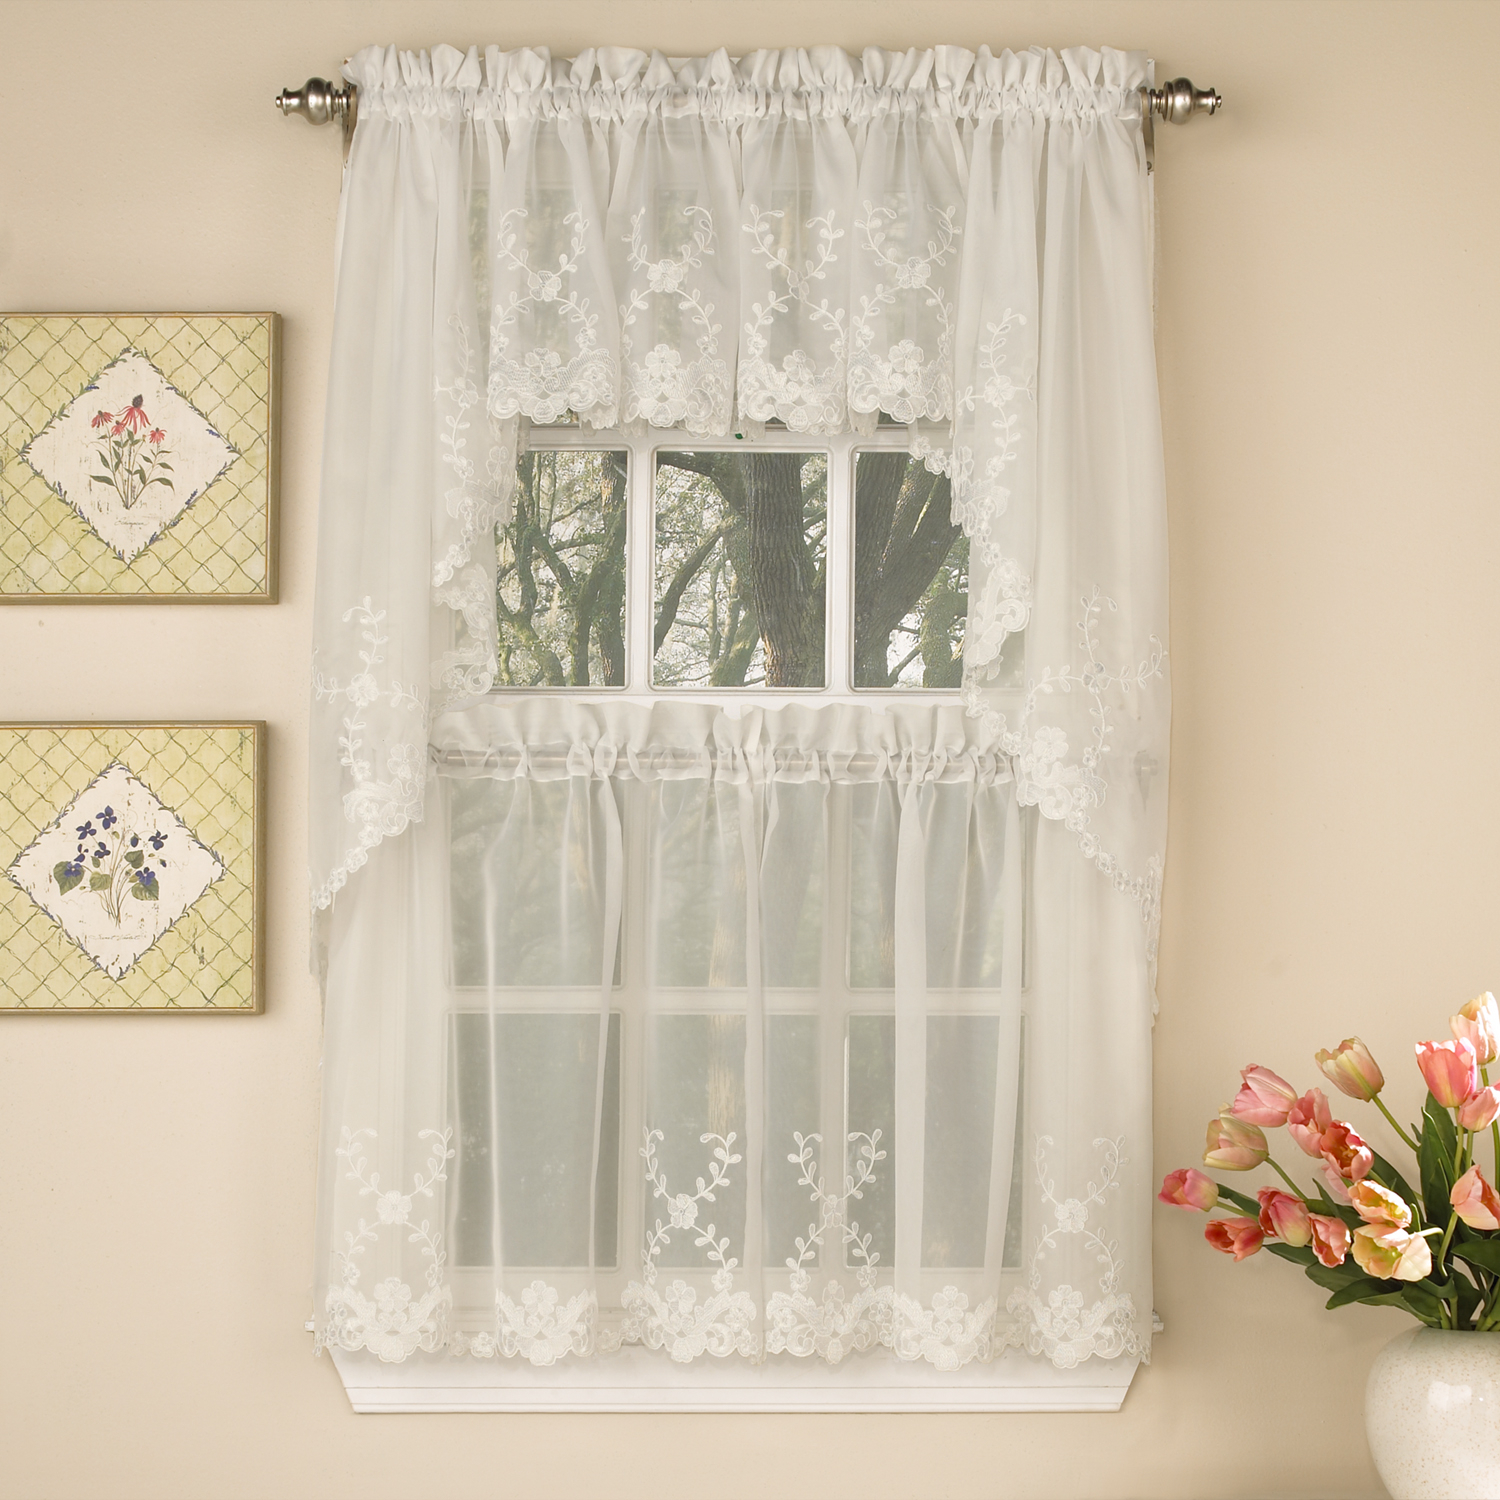 Details About Laurel Leaf Sheer Voile Embroidered Ivory Kitchen Curtains Tier, Valance Or Swag Within Semi Sheer Rod Pocket Kitchen Curtain Valance And Tiers Sets (View 4 of 20)